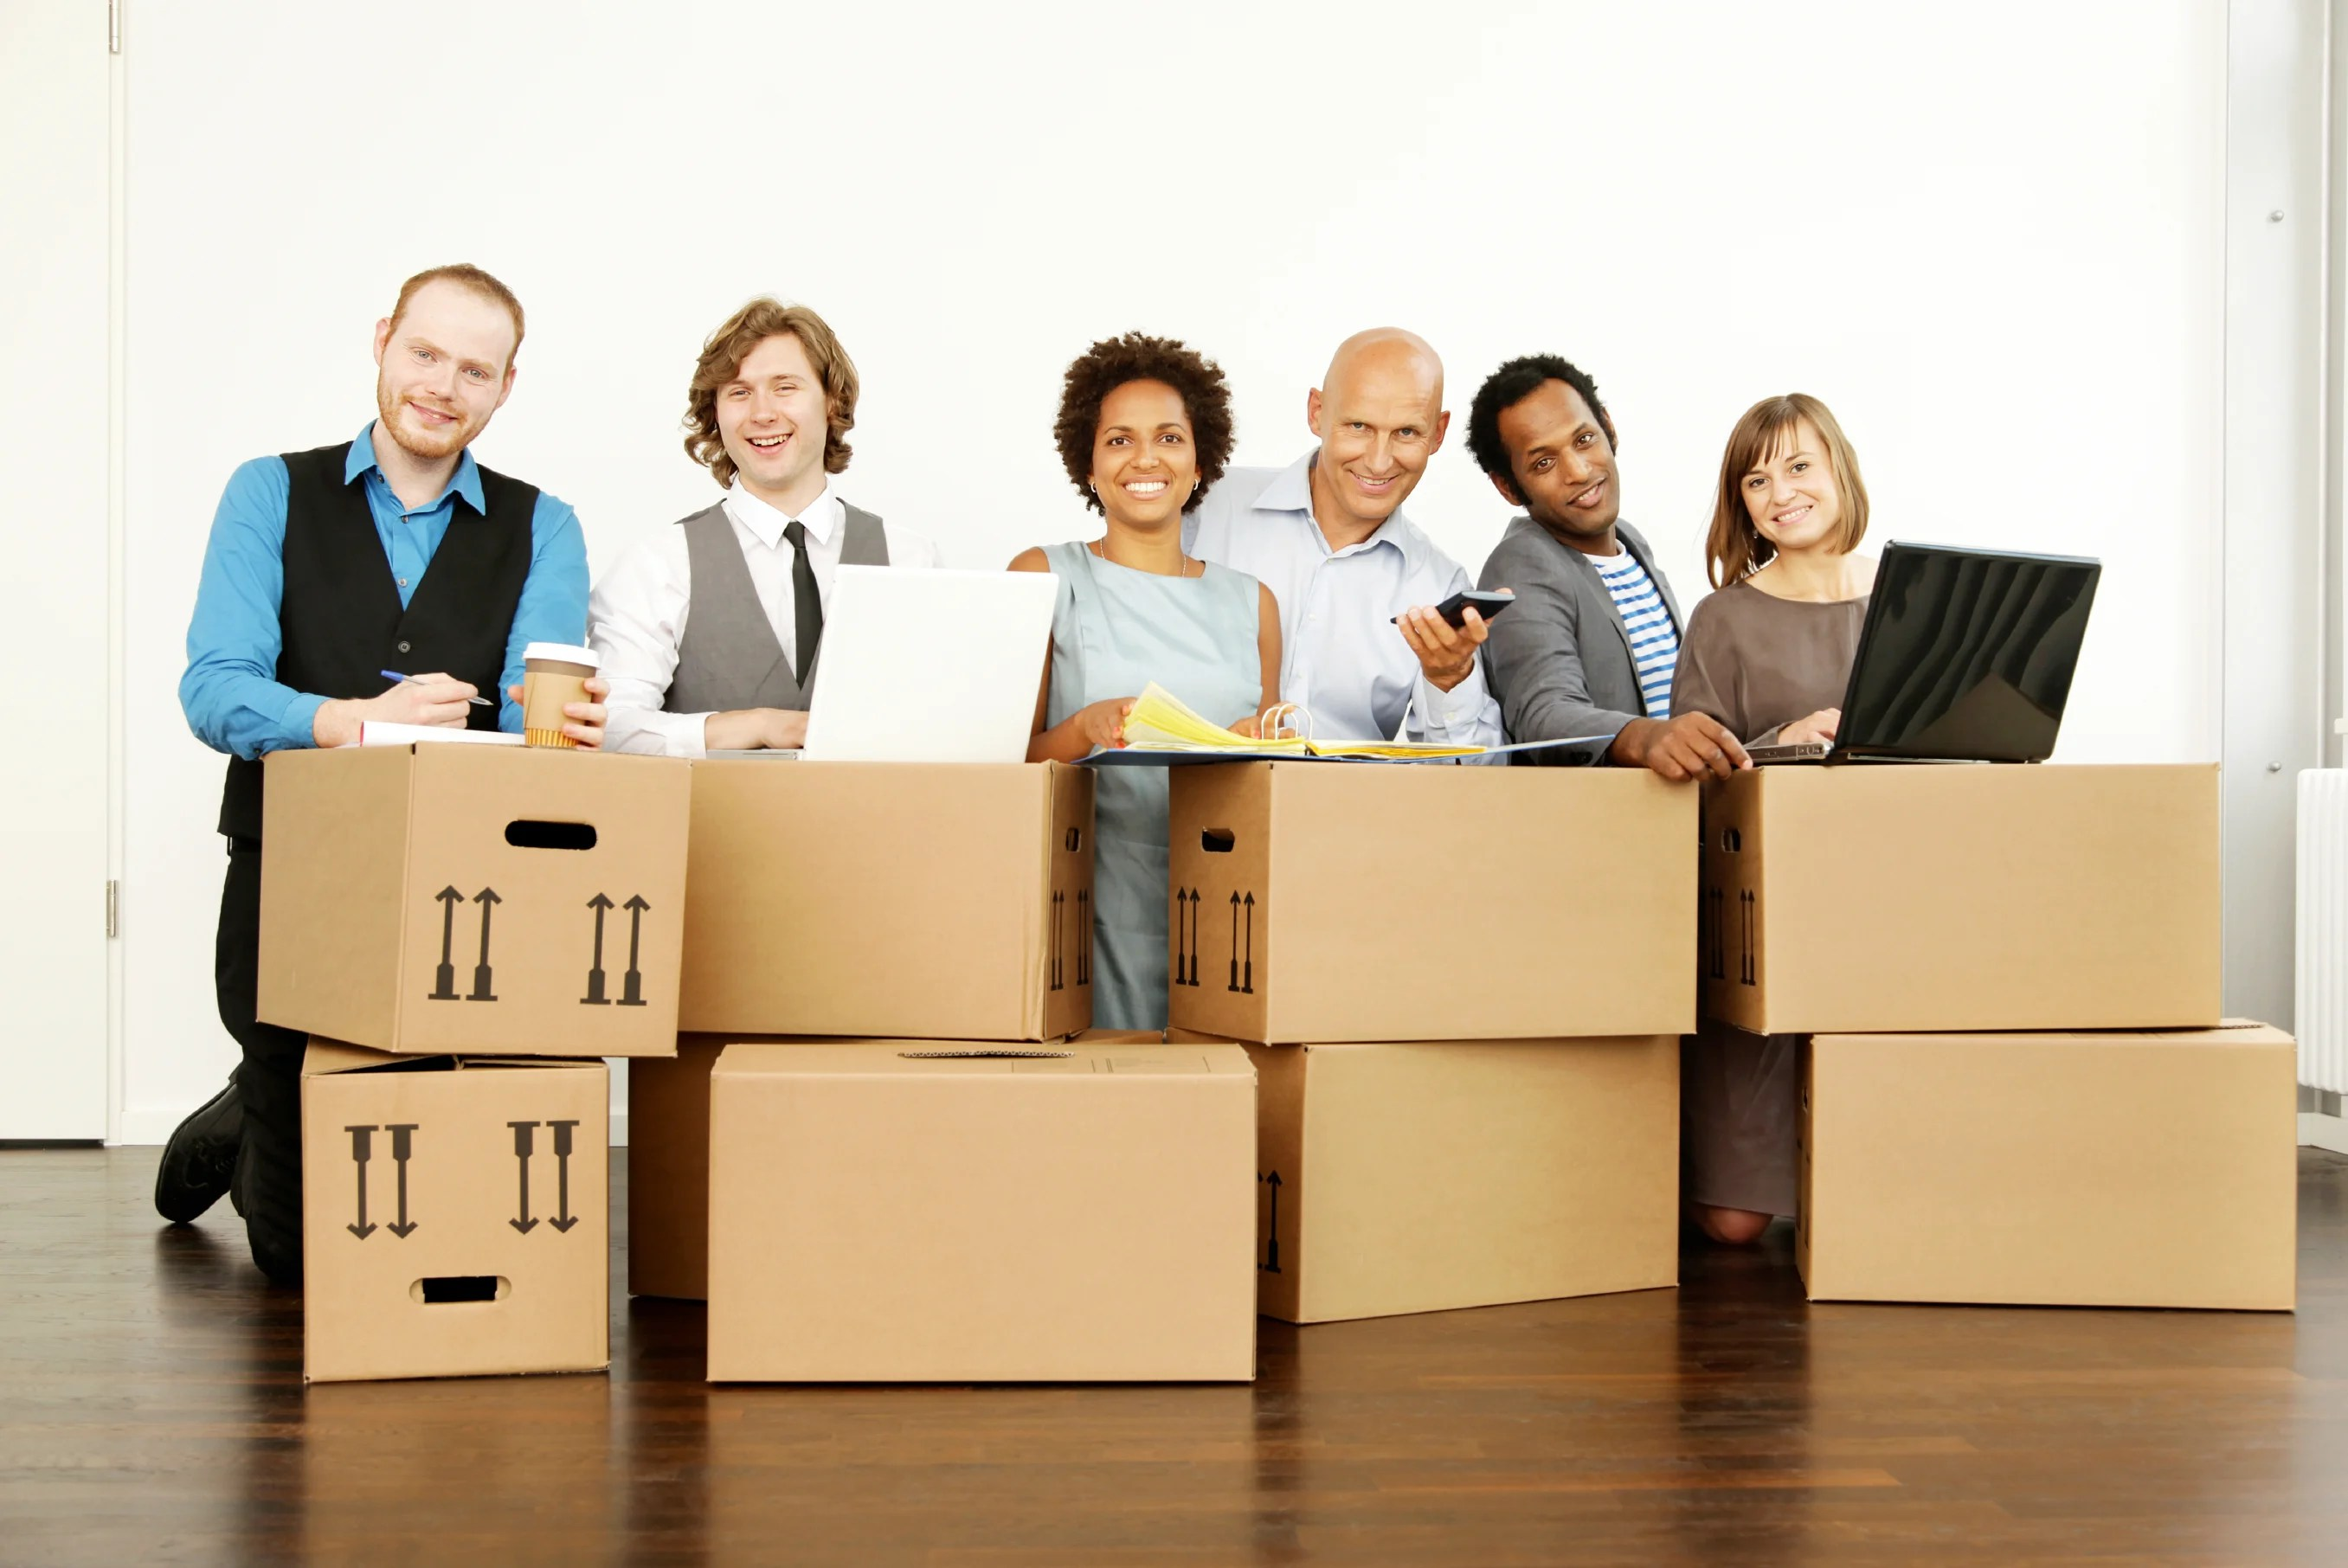 Tips to help facilities managers get better results from corporate moves